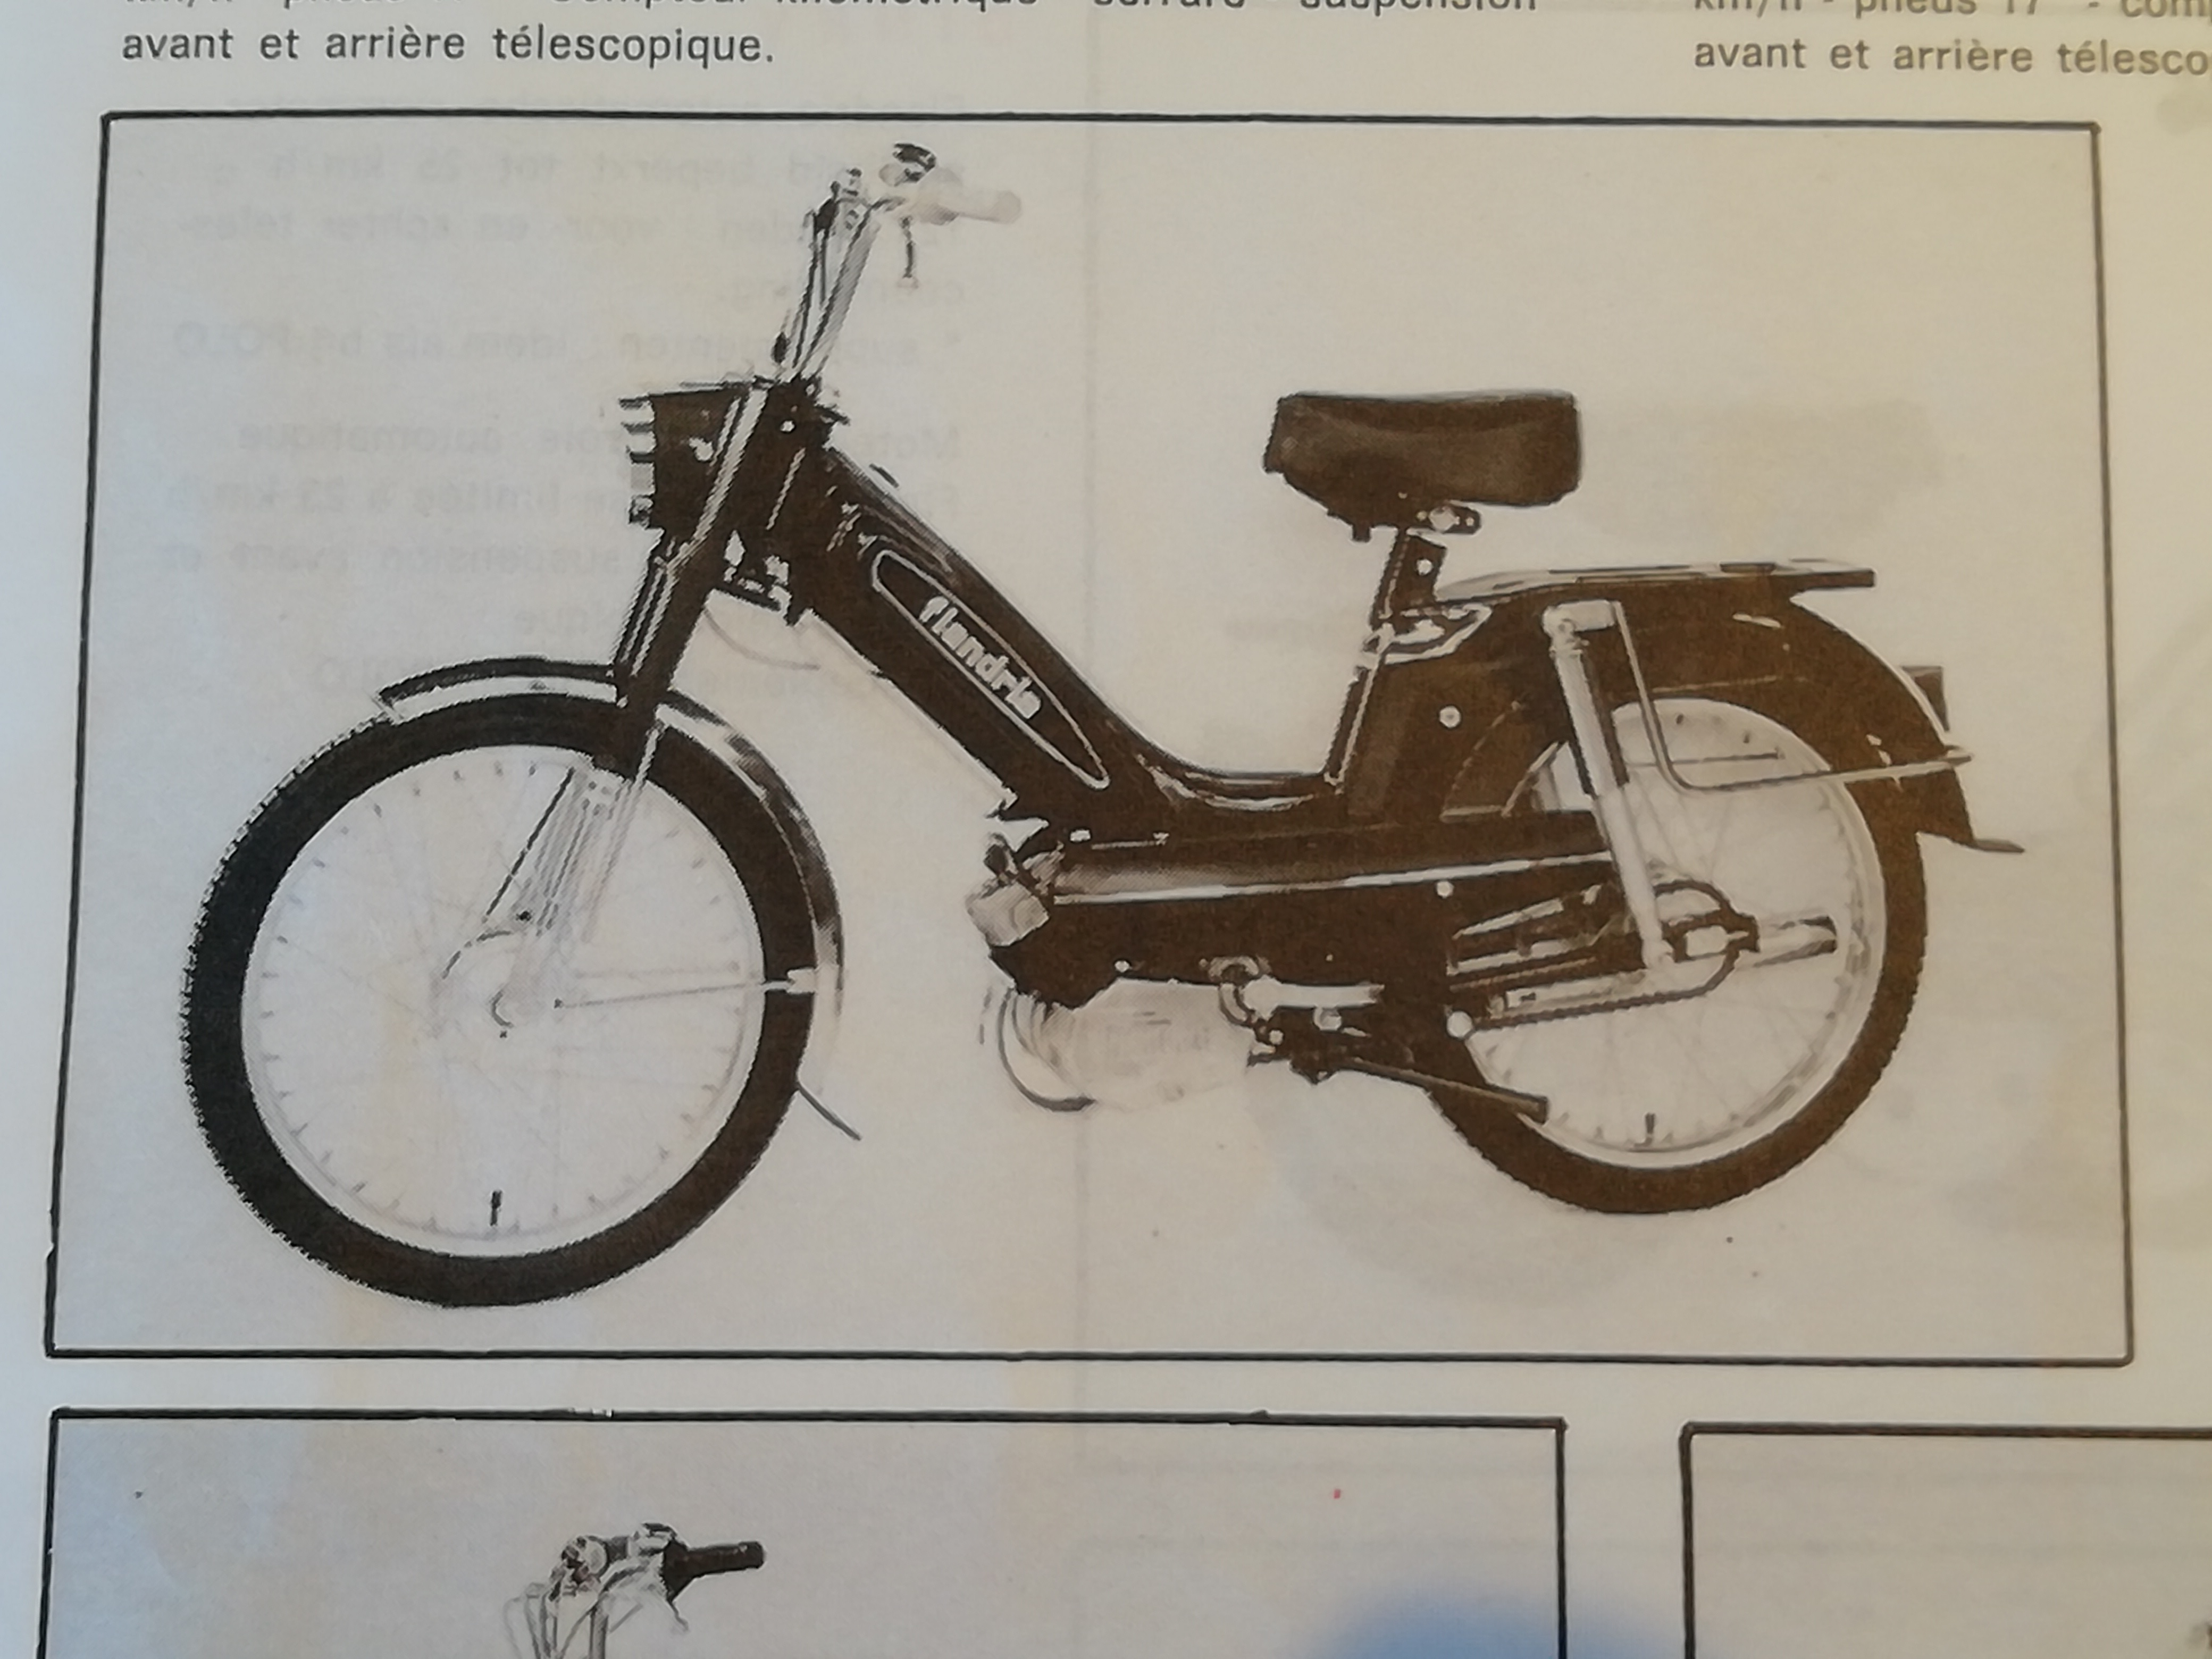 Mobylette flandria inconnu 582zKb-Flandria-Penny-